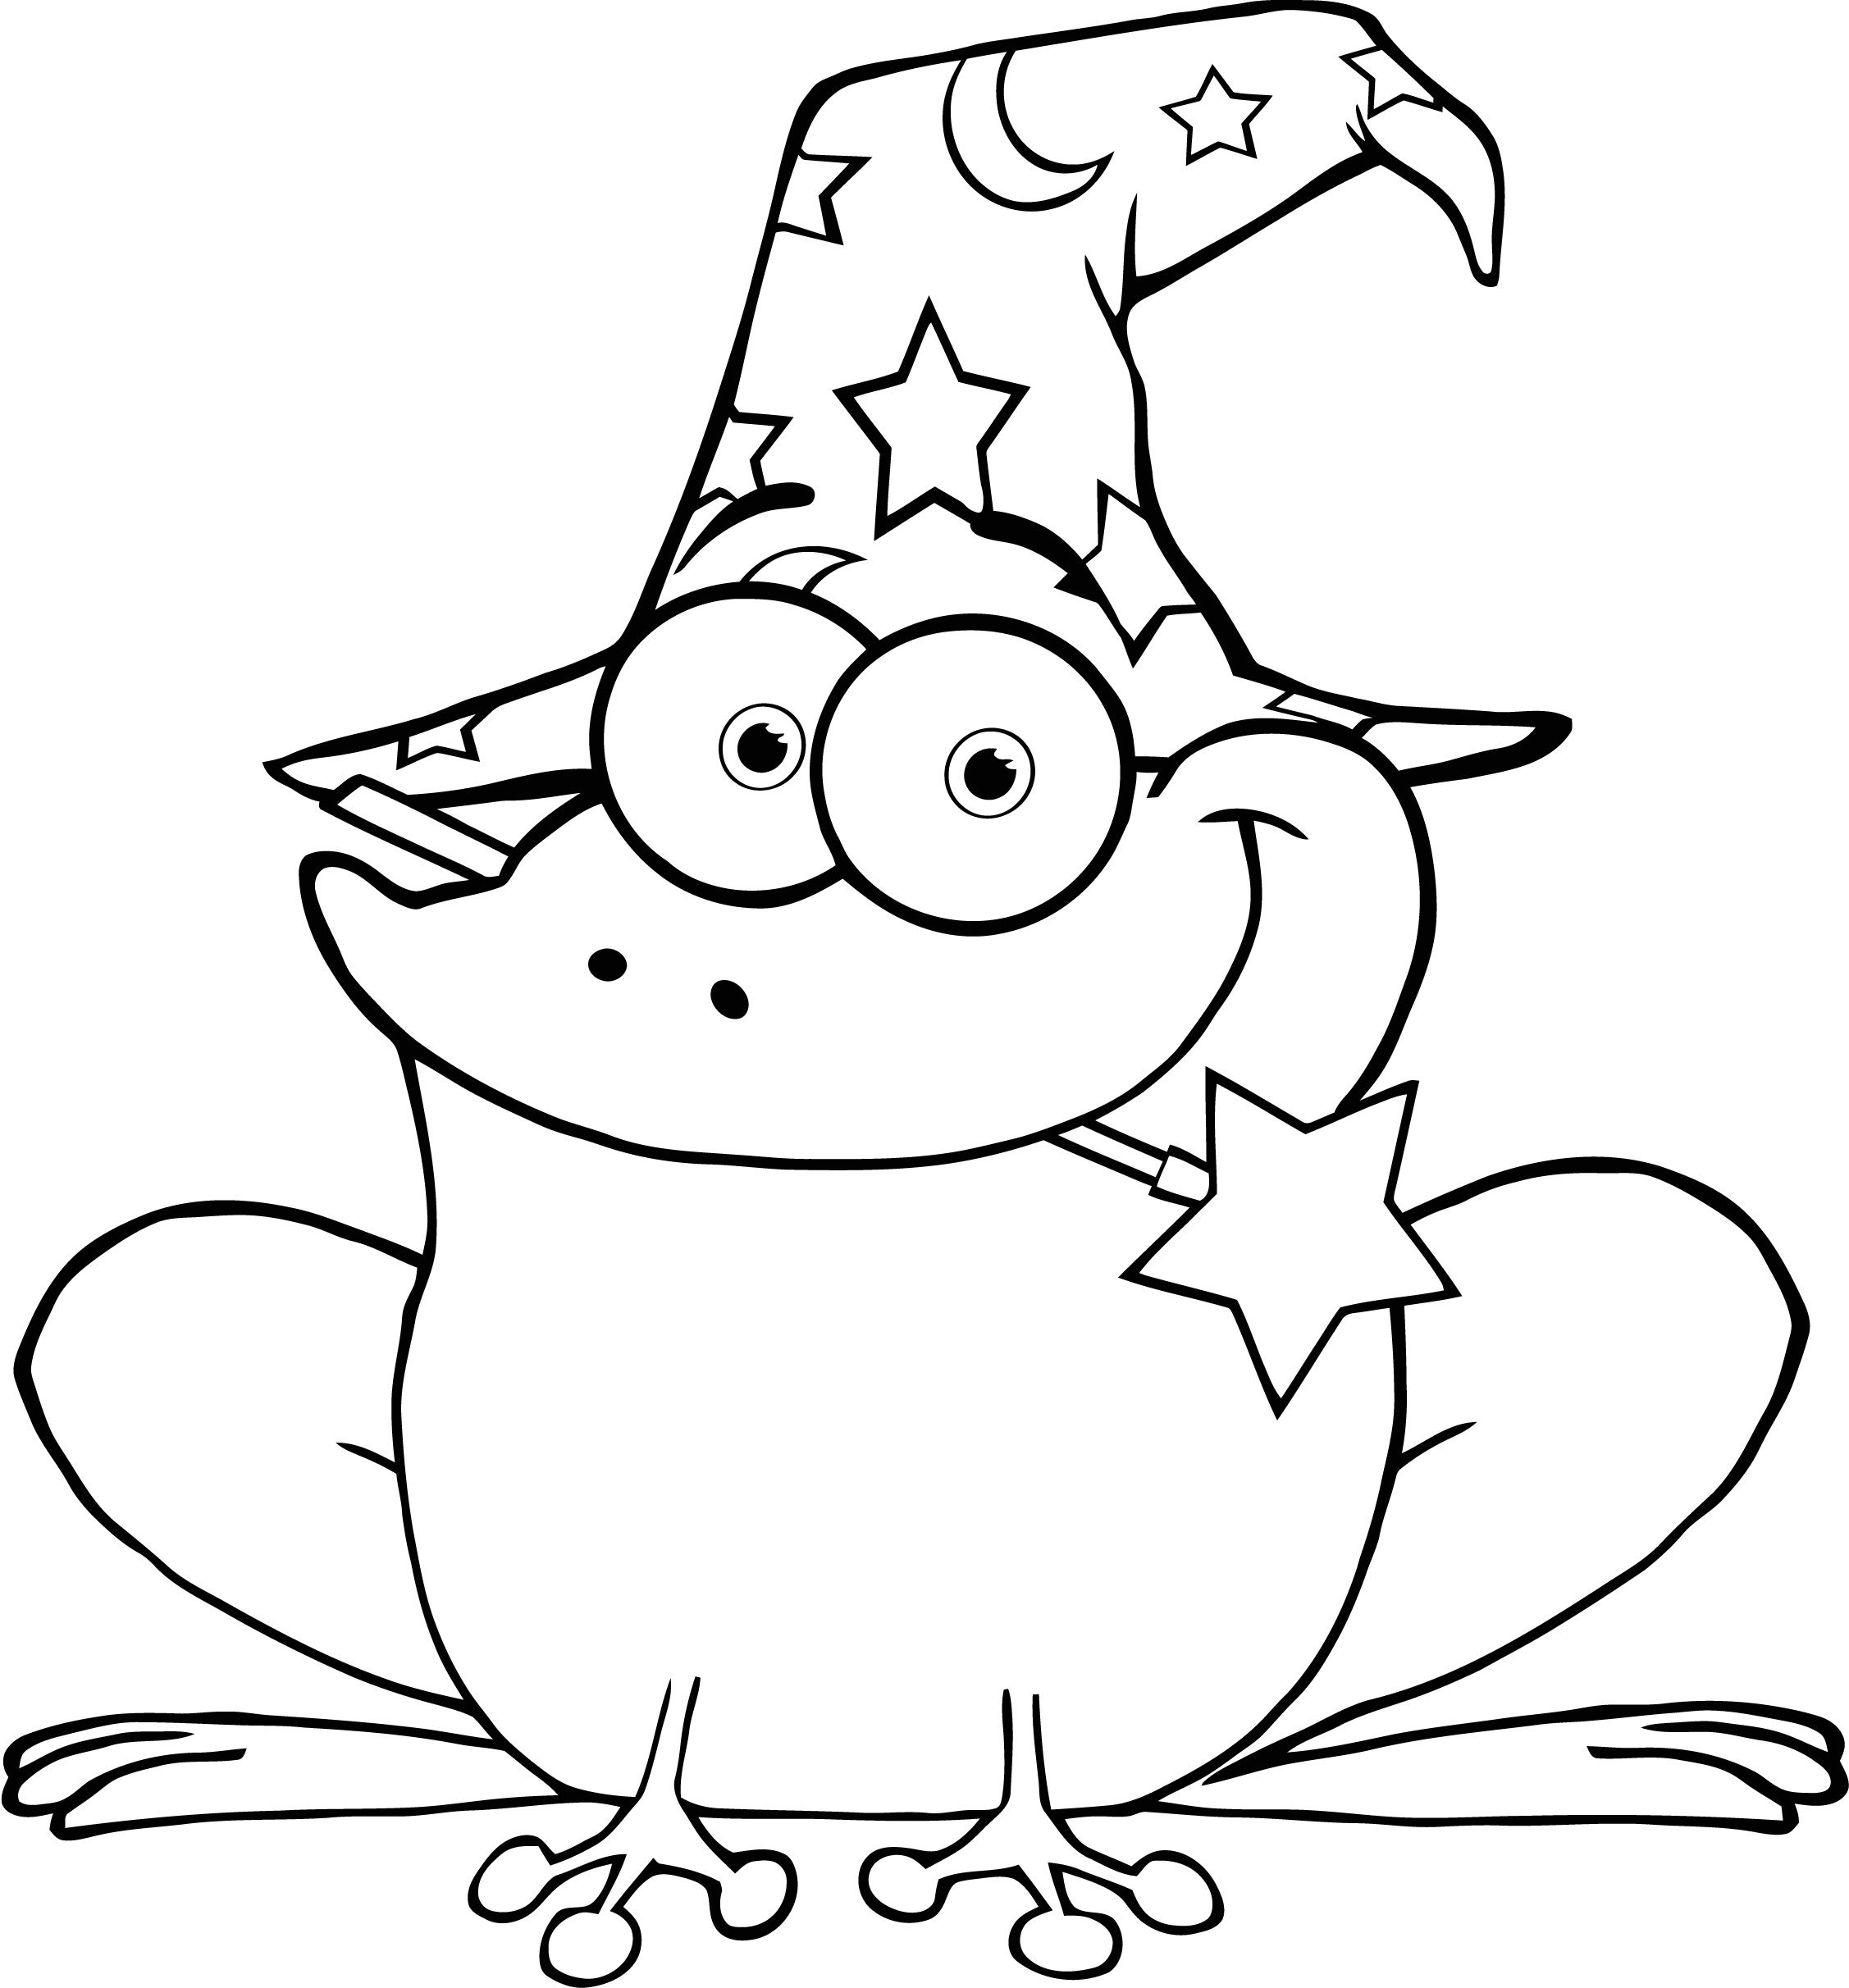 cute frog coloring pages for kids - Cartoon Pictures To Colour